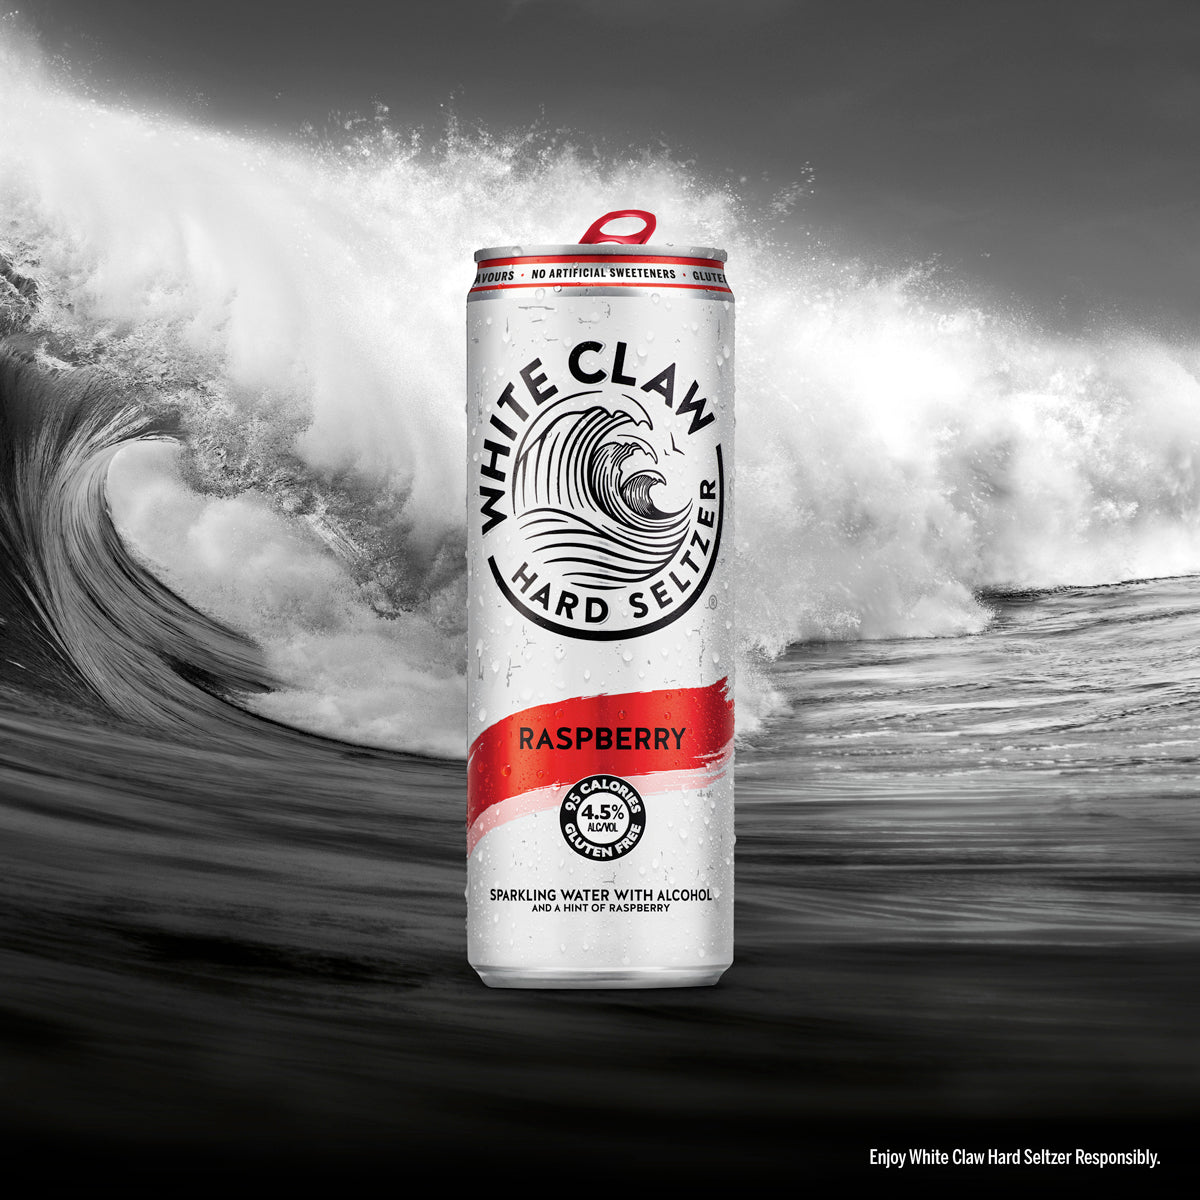 White Claw Raspberry Hard Seltzer